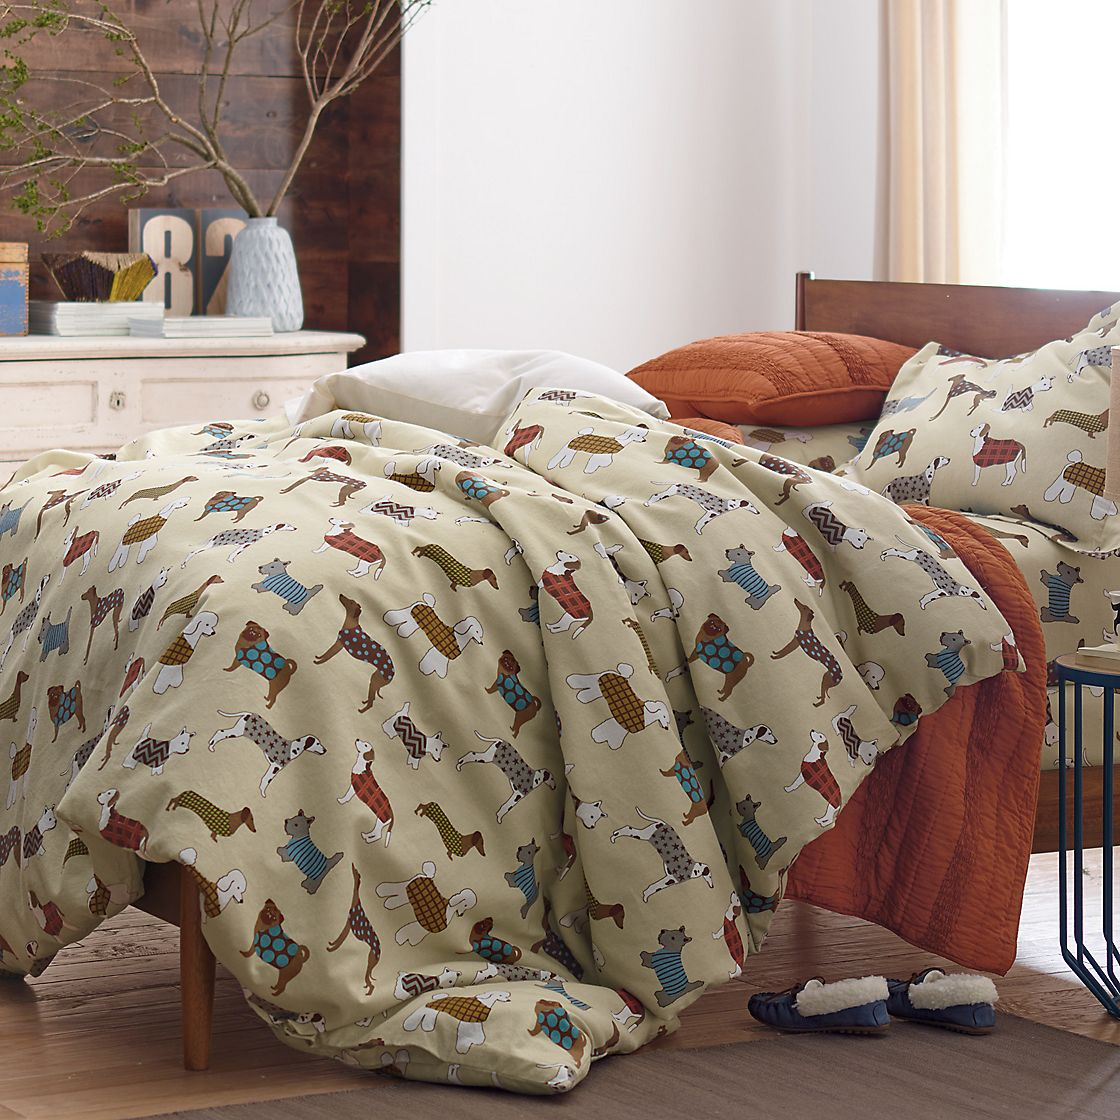 Walk The Dog Flannel Duvet Cover The Company Store